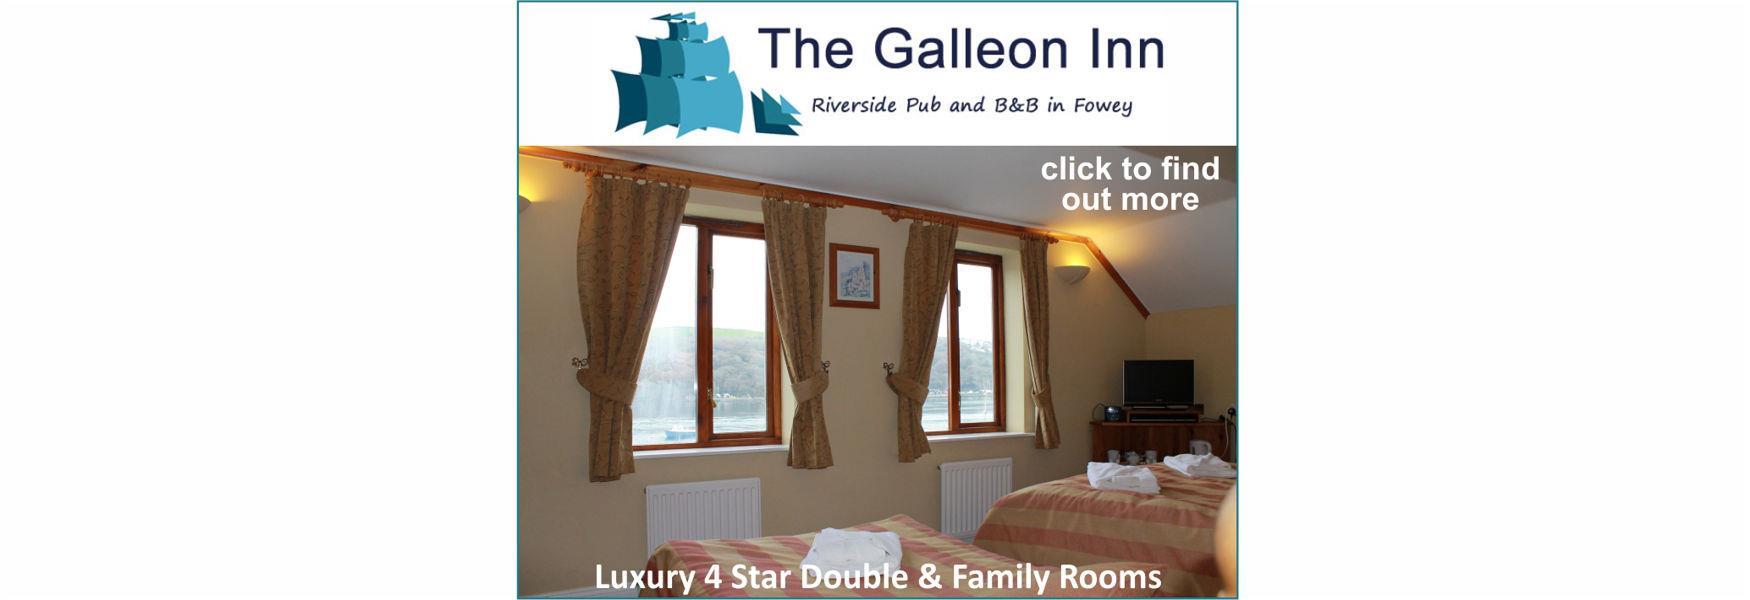 The Galleon Inn - Luxury 4 Star Double & Family Rooms - click to find out more